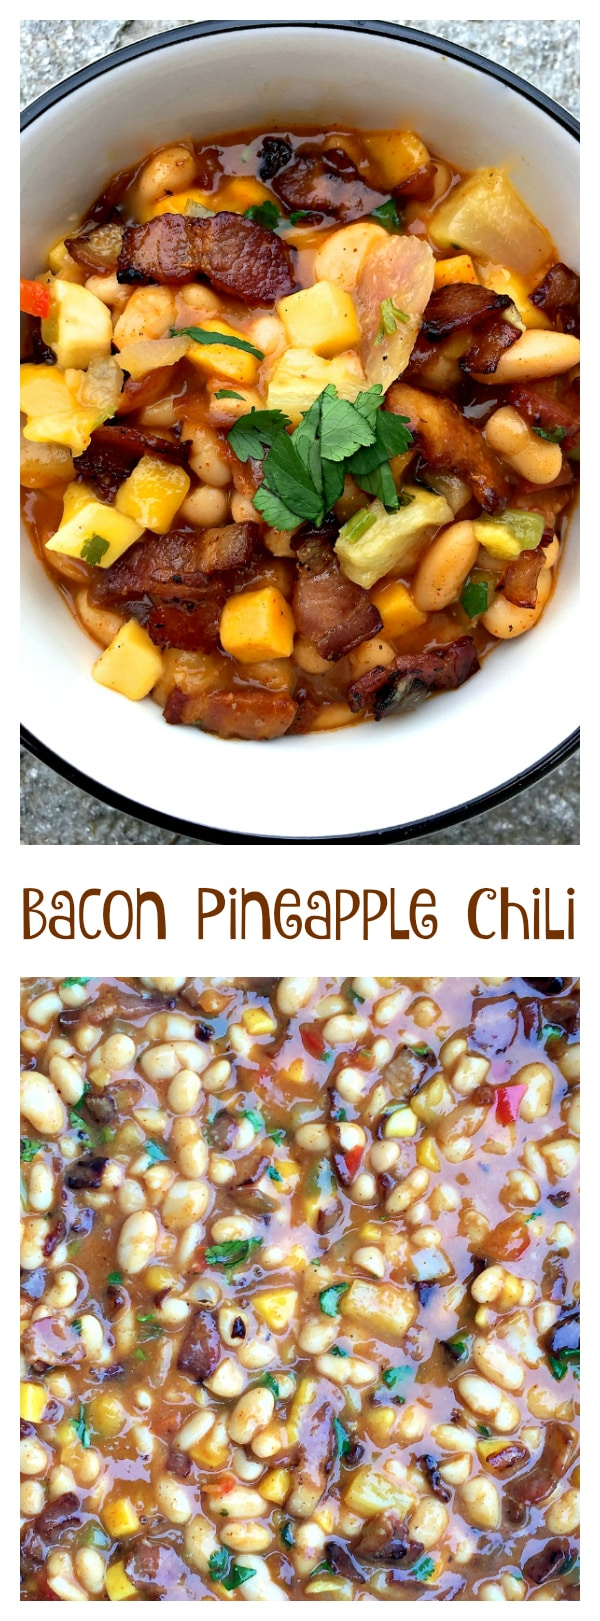 Enjoy this Bacon Pineapple Chili recipe with only 7 ingredients, easy enough to make and serve in 30 minutes